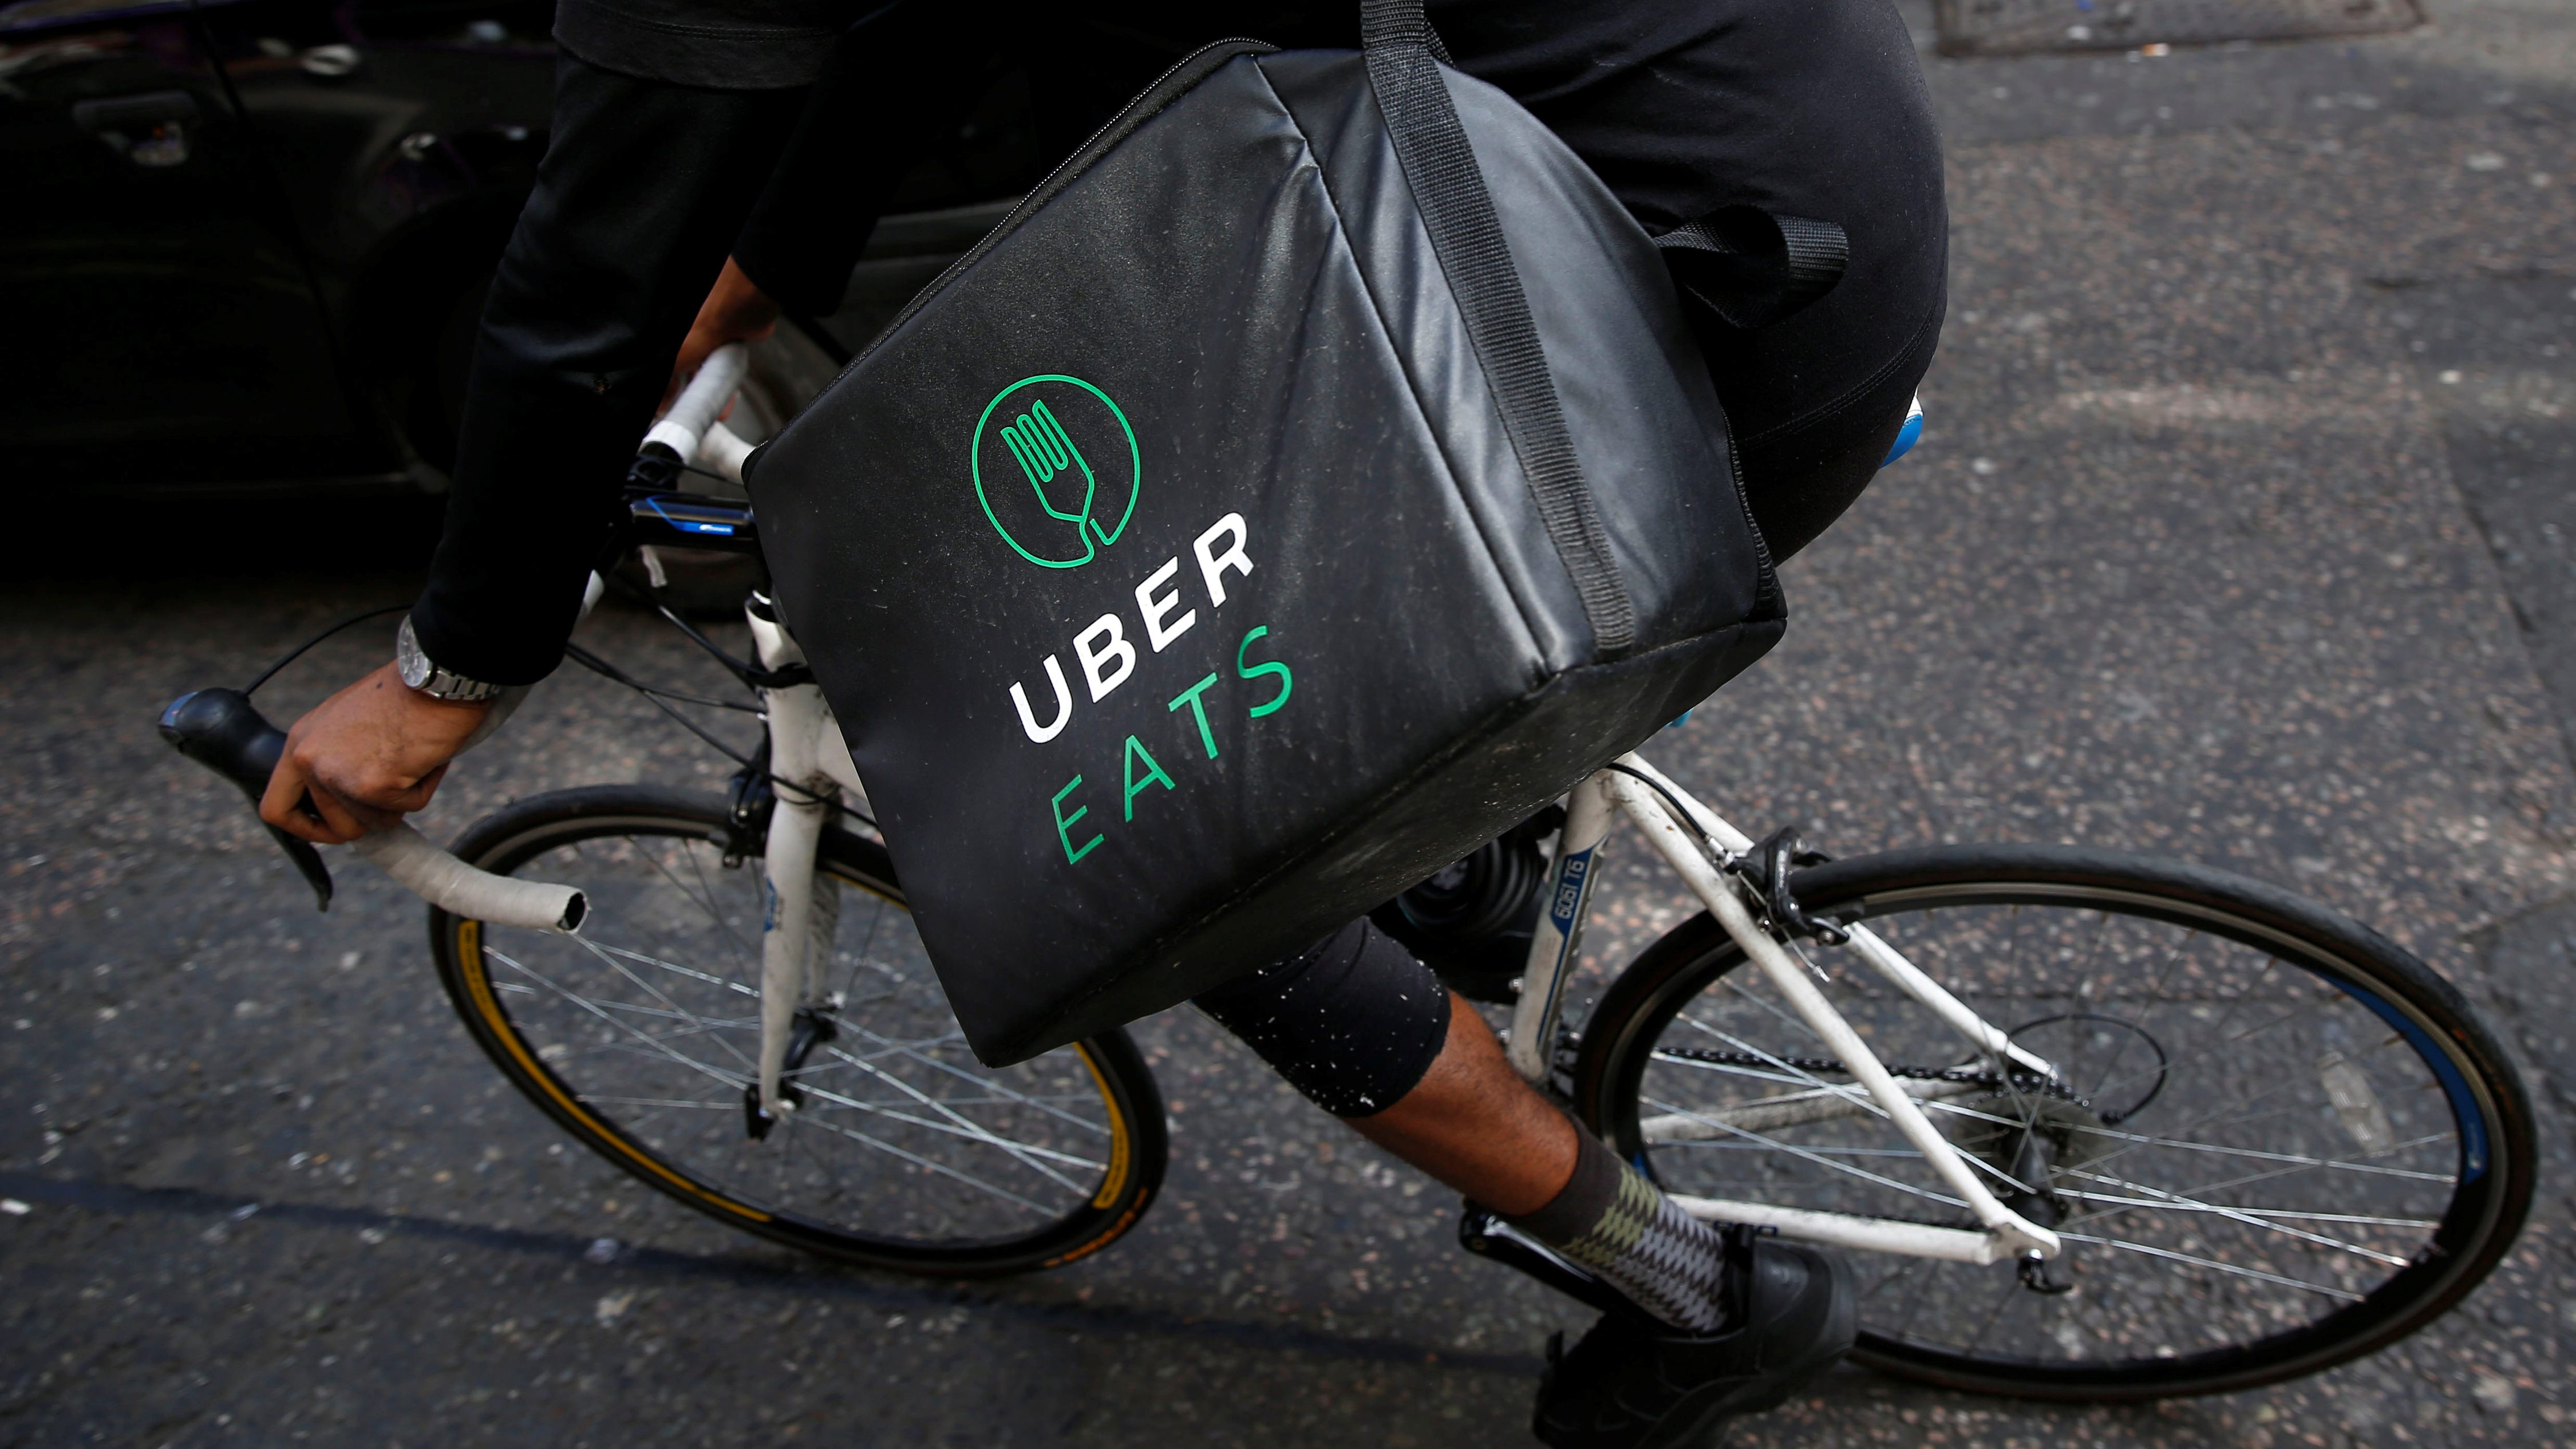 An UberEATS food delivery courier rides his bike in London.